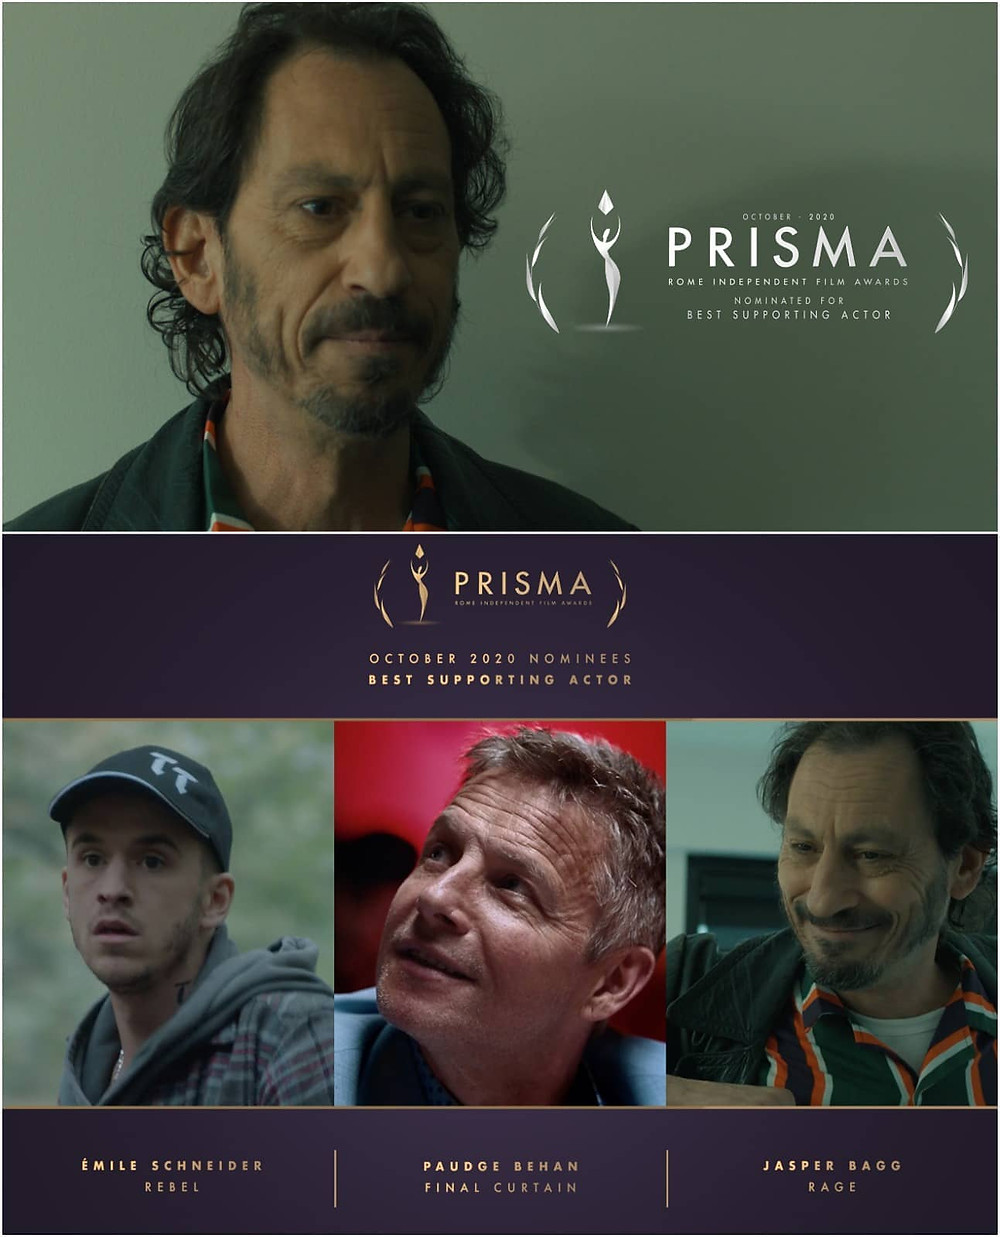 Jasper Bagg Best Supporting Actor Nominee Nomination Rage Prisma Rome Independent Film Awards